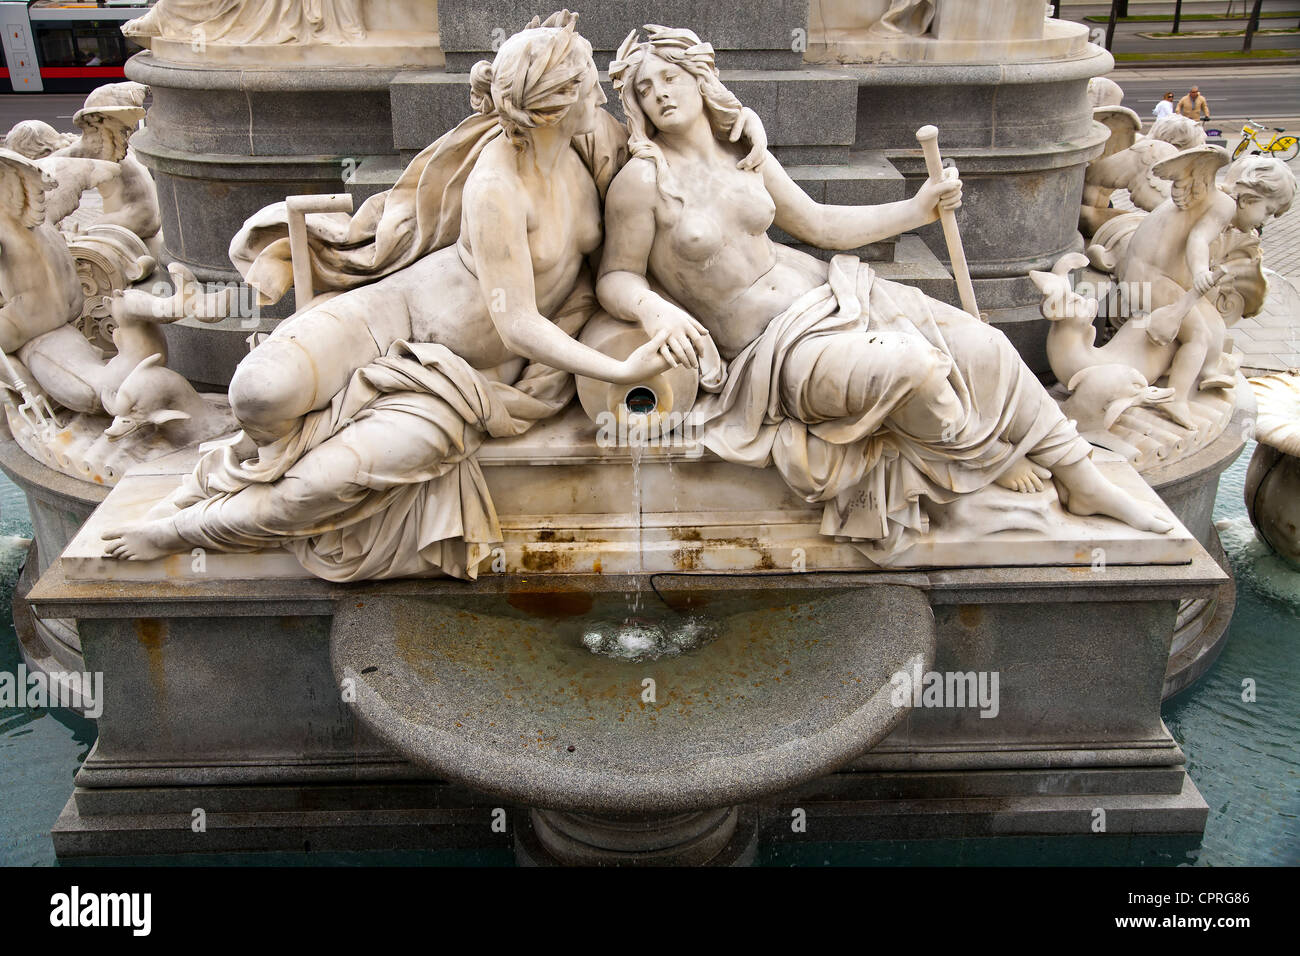 Detail of the Palace Athene Fountain of wisdom at the parliament, Vienna - Stock Image